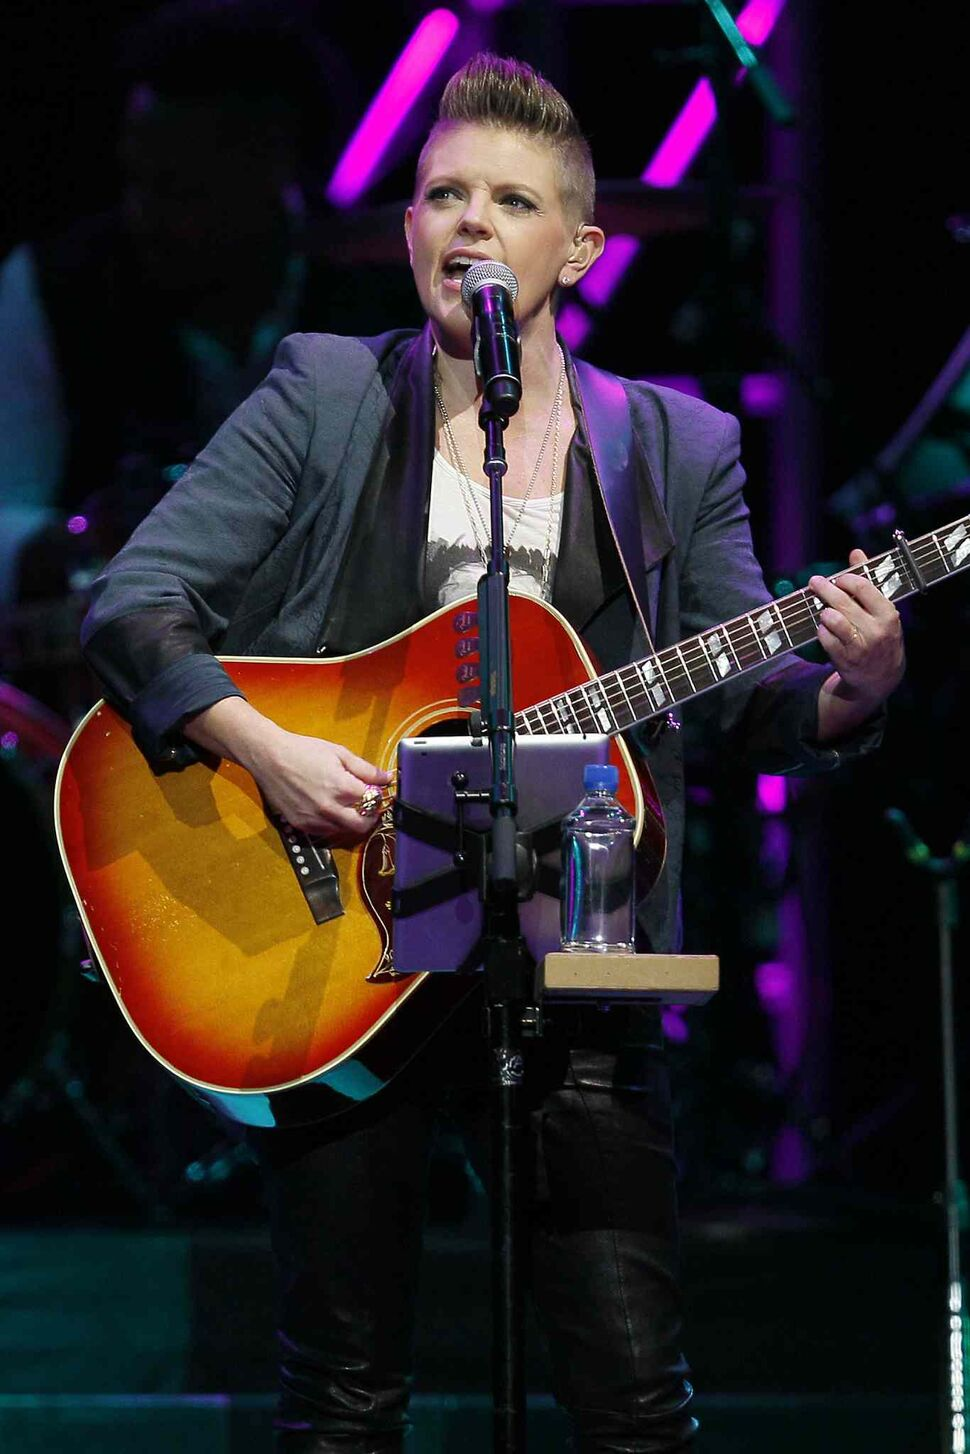 Dixie Chicks lead singer Natalie Maines belts out a song while strumming a guitar. (JOHN WOODS / WINNIPEG FREE PRESS)